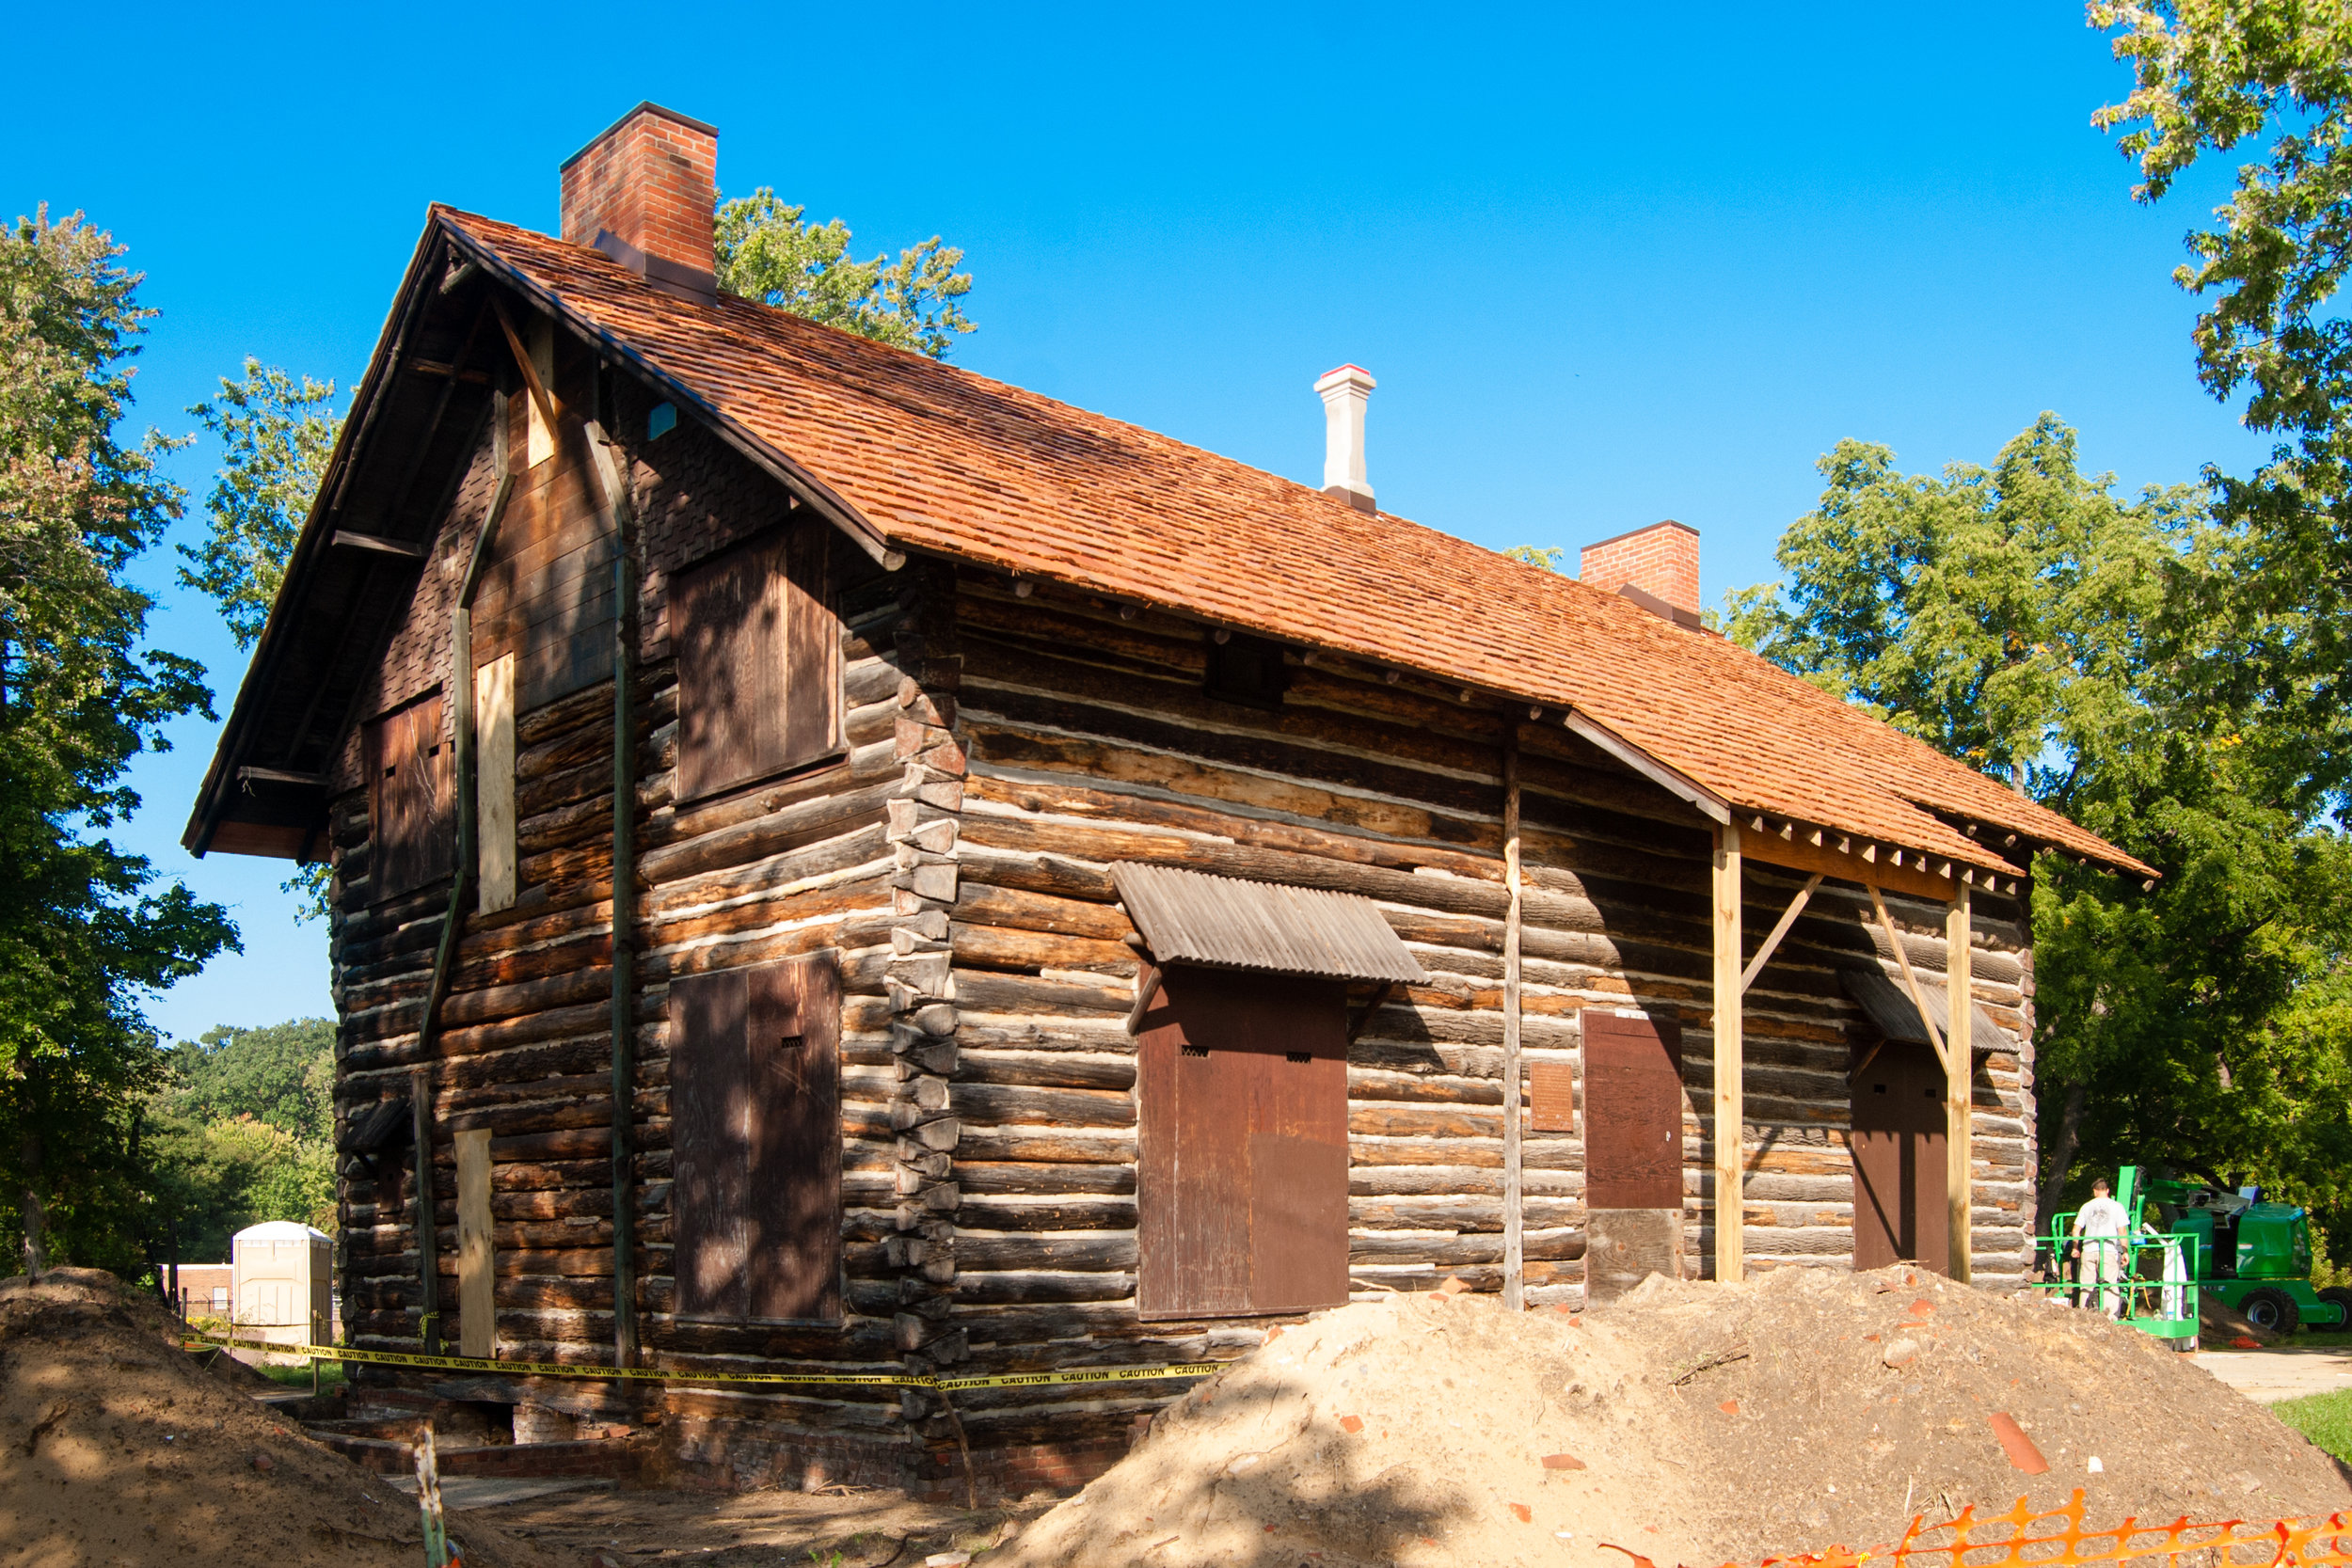 The Palmer Park Log Cabin during Phase One of the restoration work, October 2016.